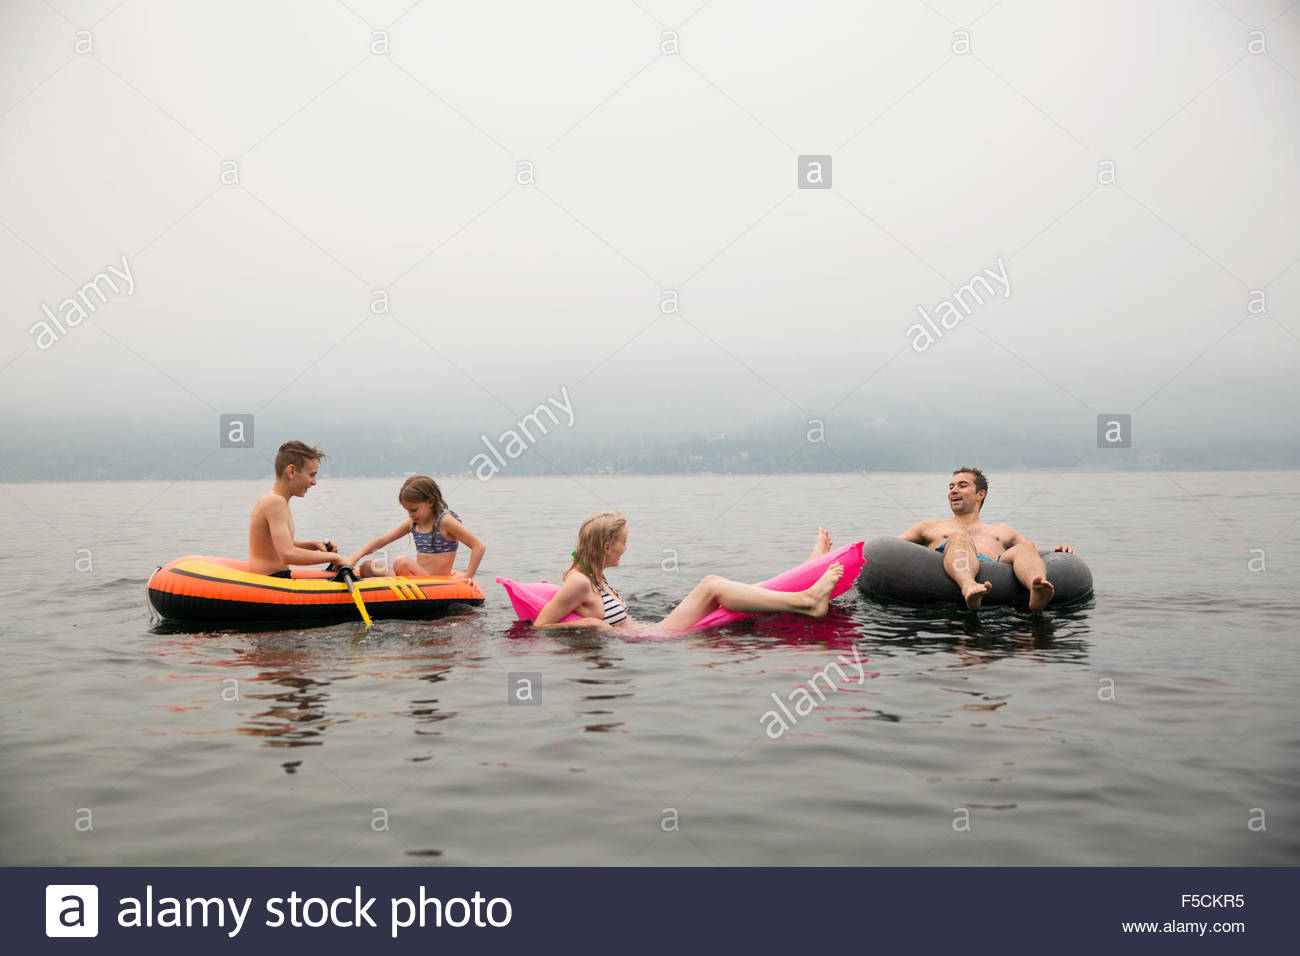 Family relaxing in pool radeaux dans le lac Photo Stock